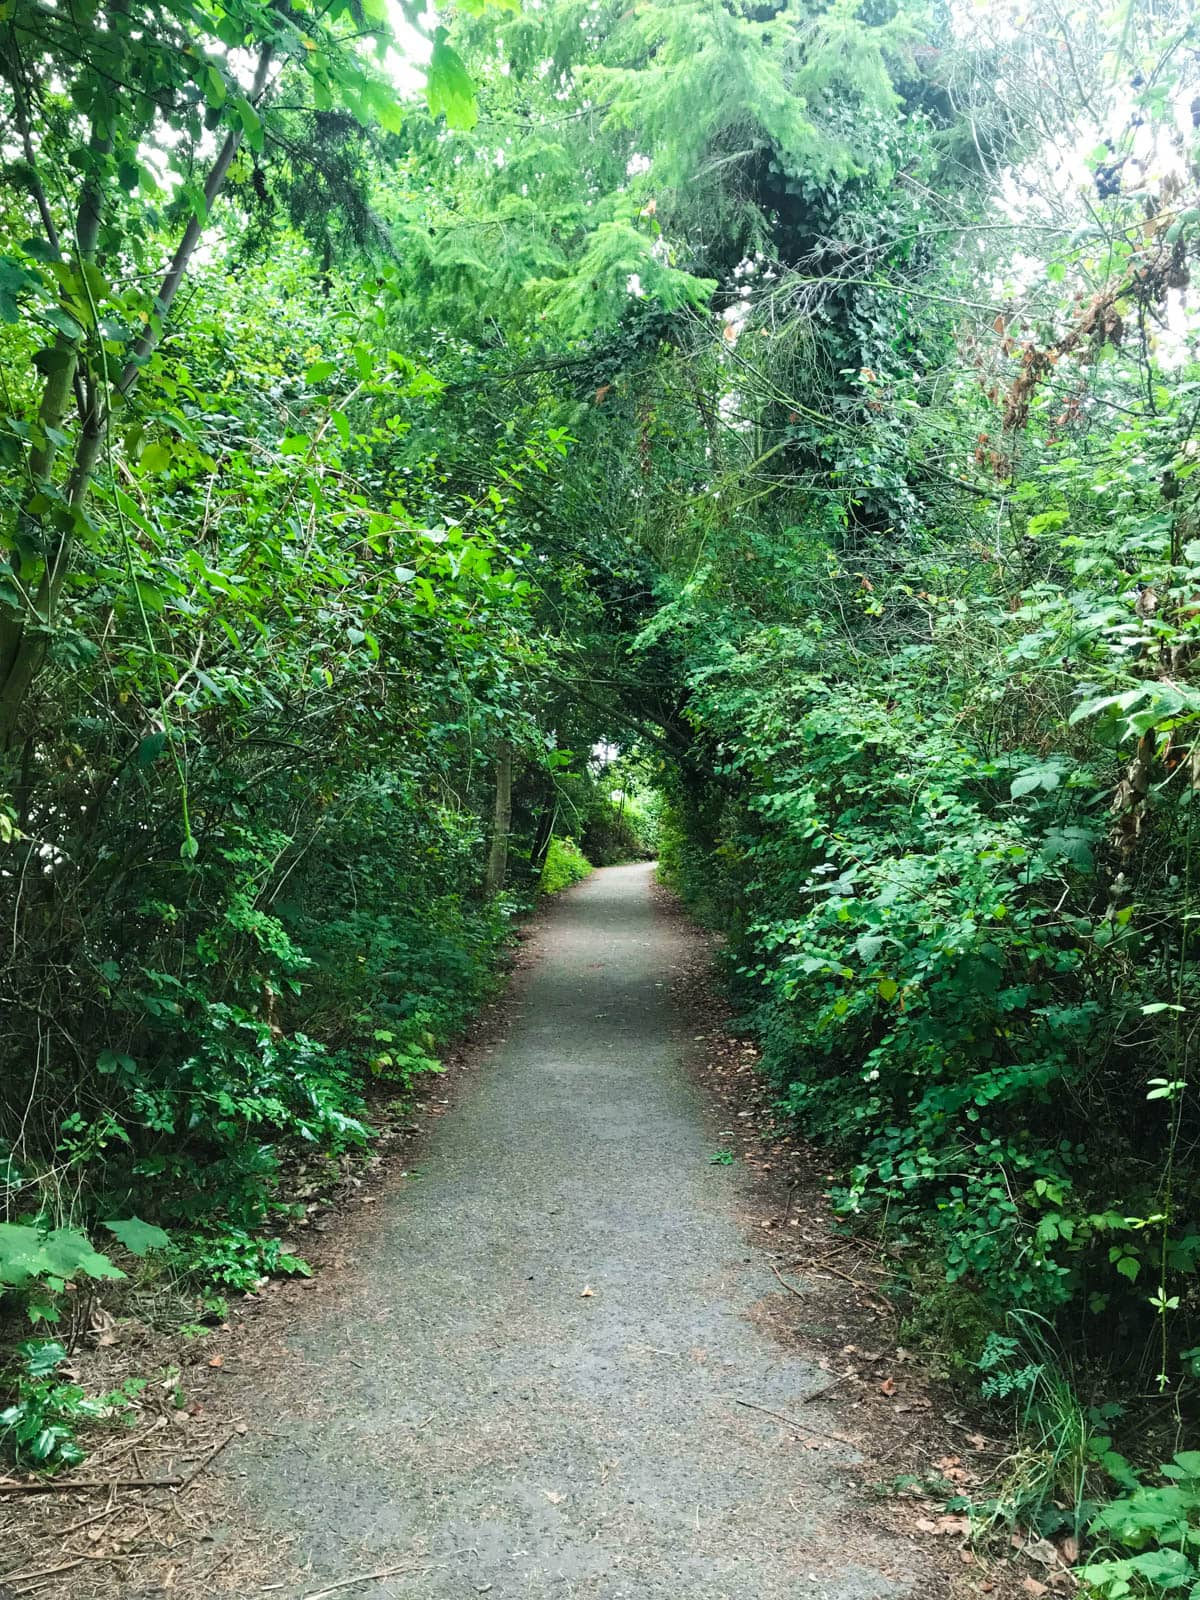 A view down a walking trail with green trees and bushes on either side.